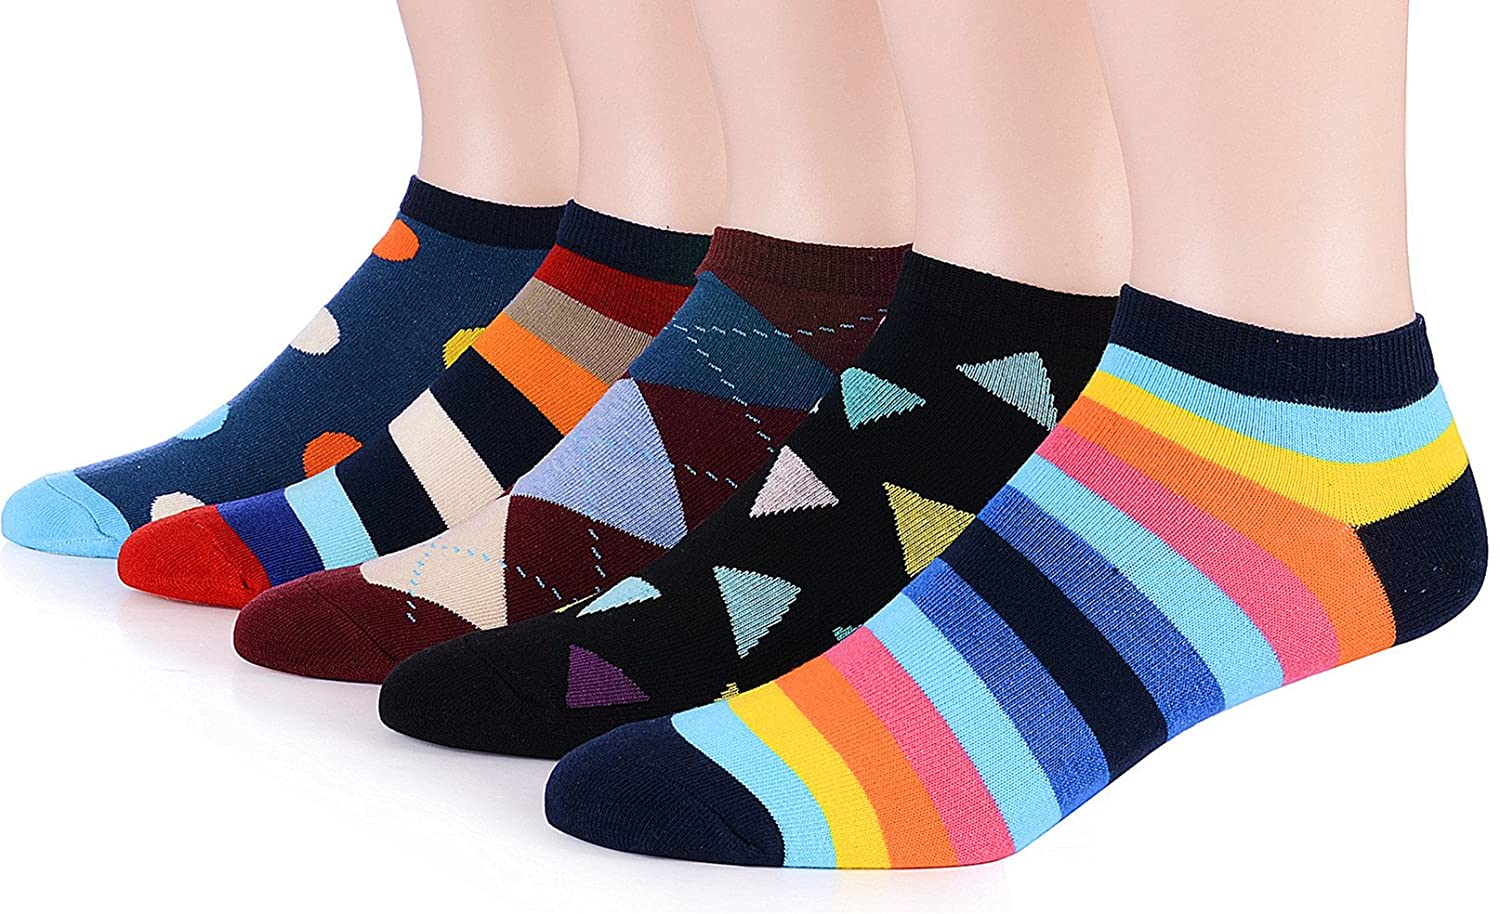 Dr. Anison Womens No Show Socks 100 Cotton Vintage Liner Pack of 5 Pair